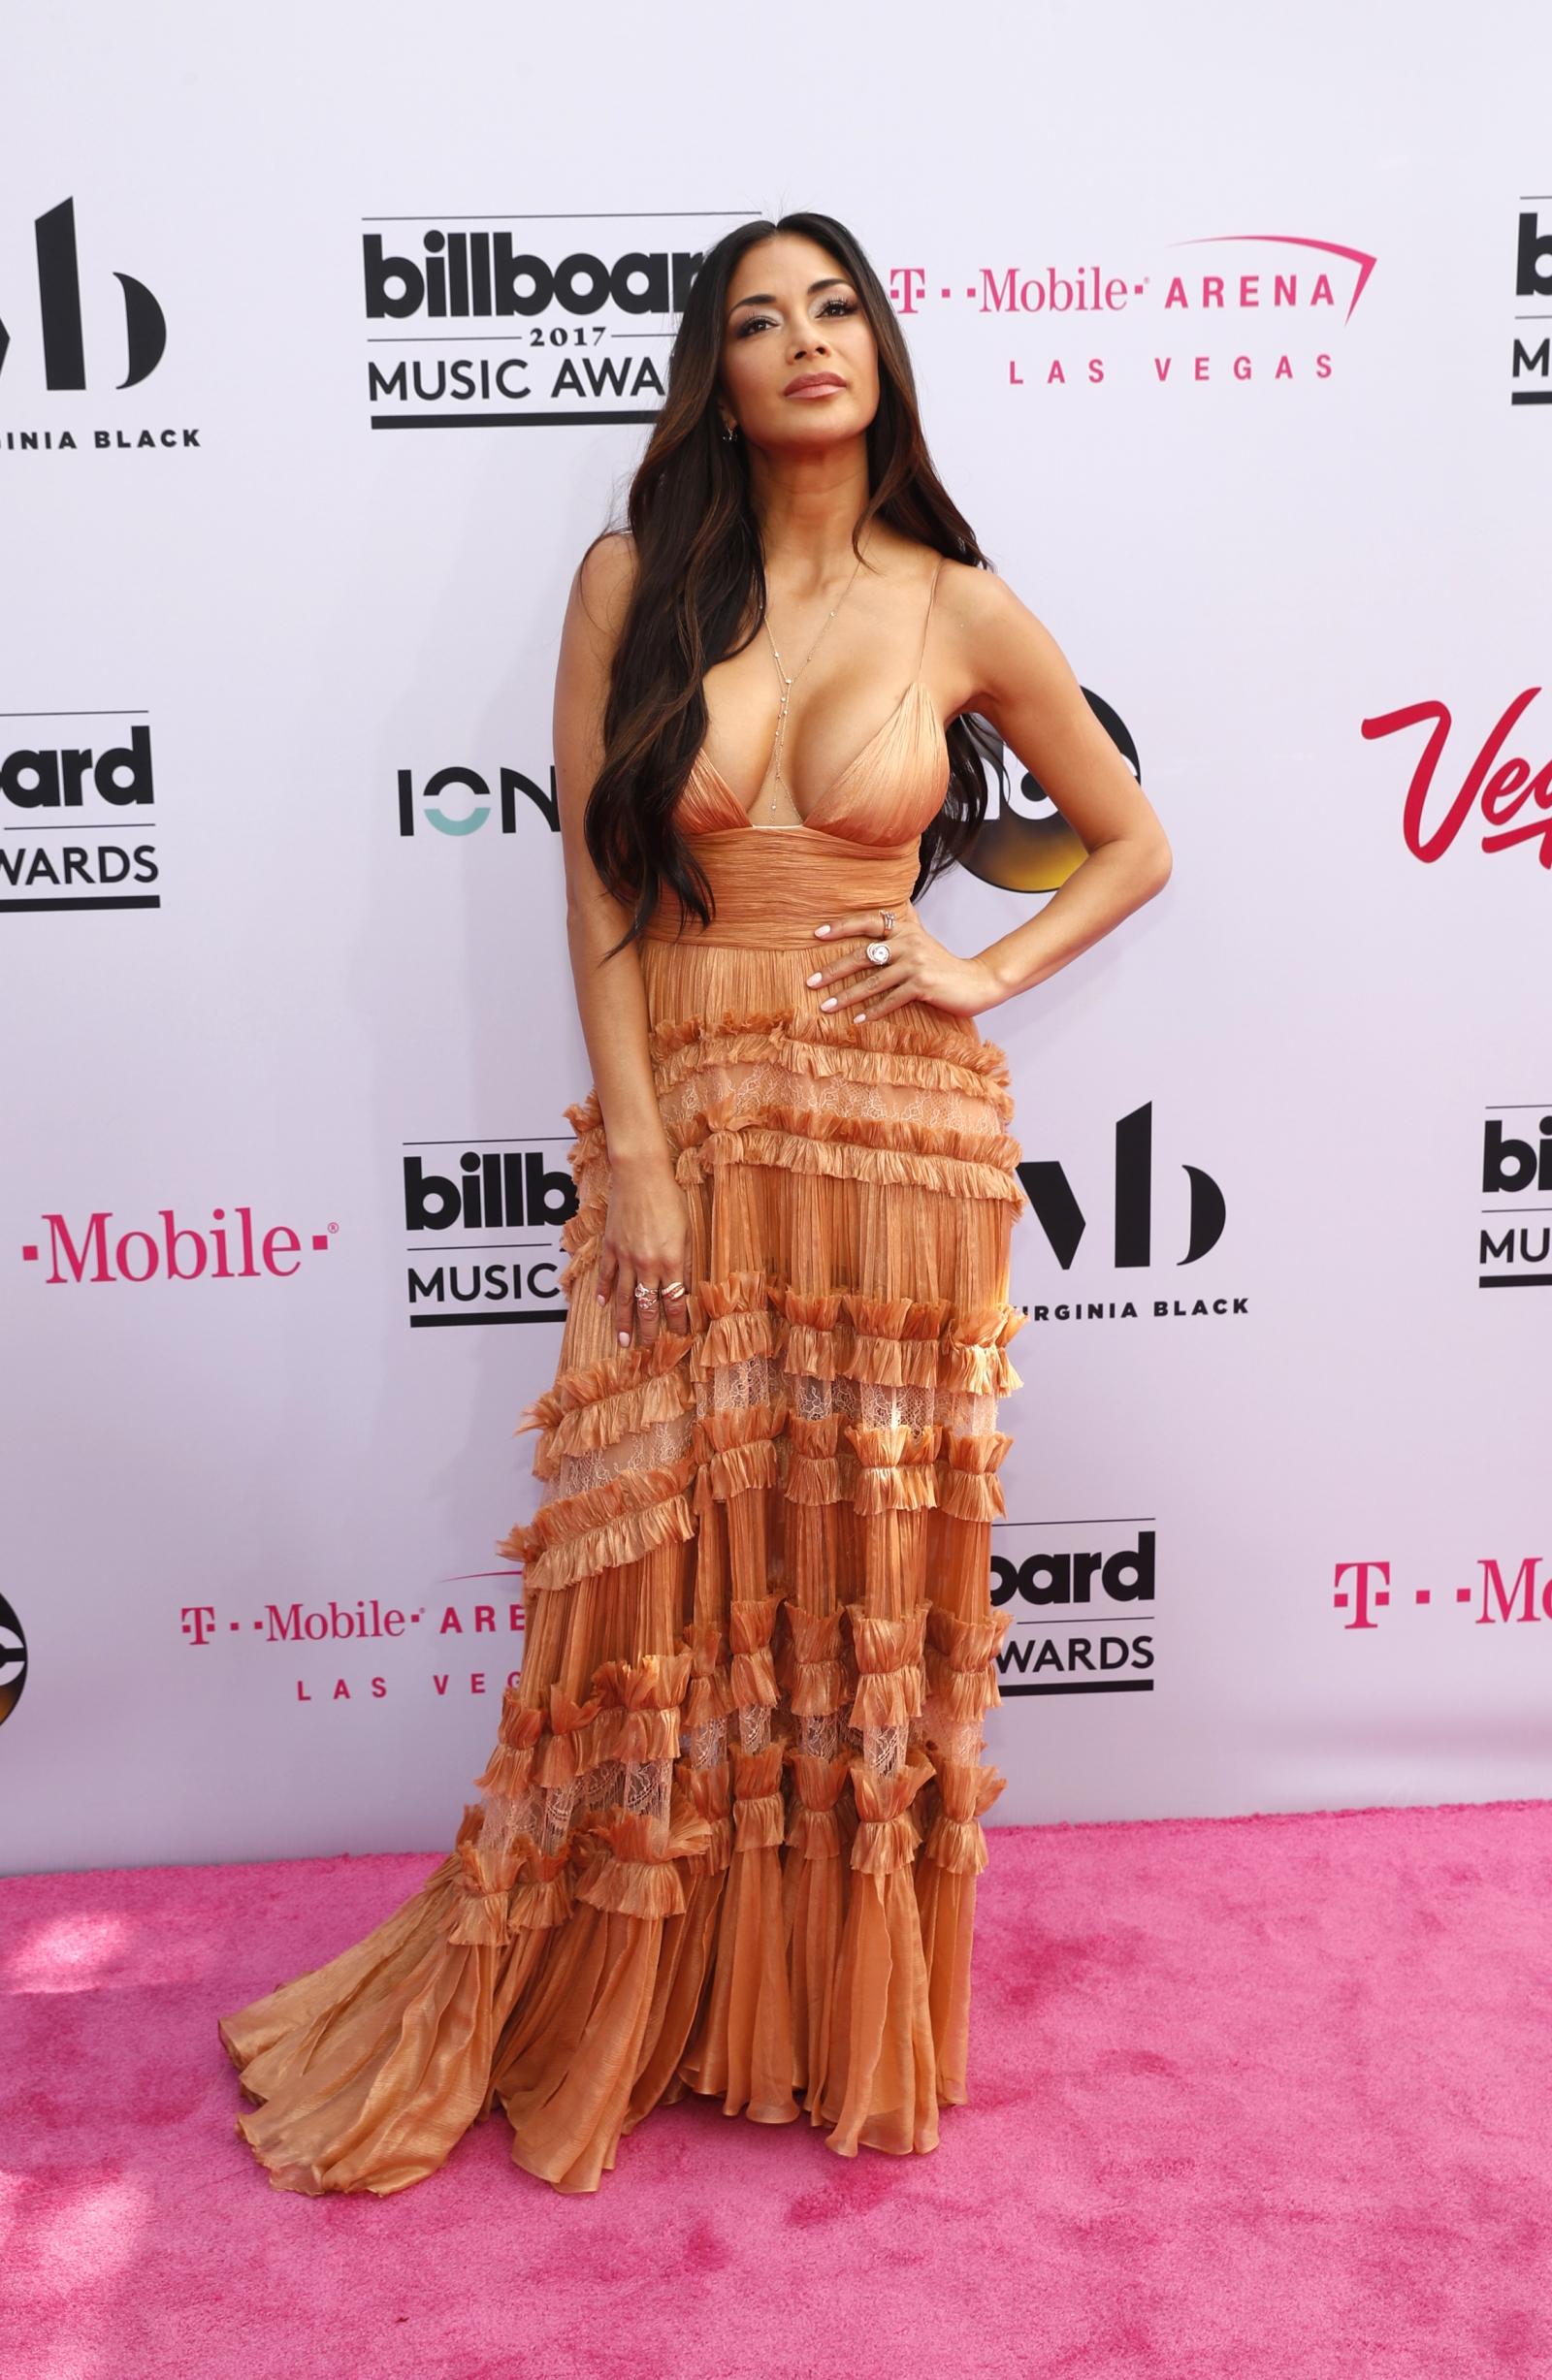 billboard awards 2017 most revealing and outrageous